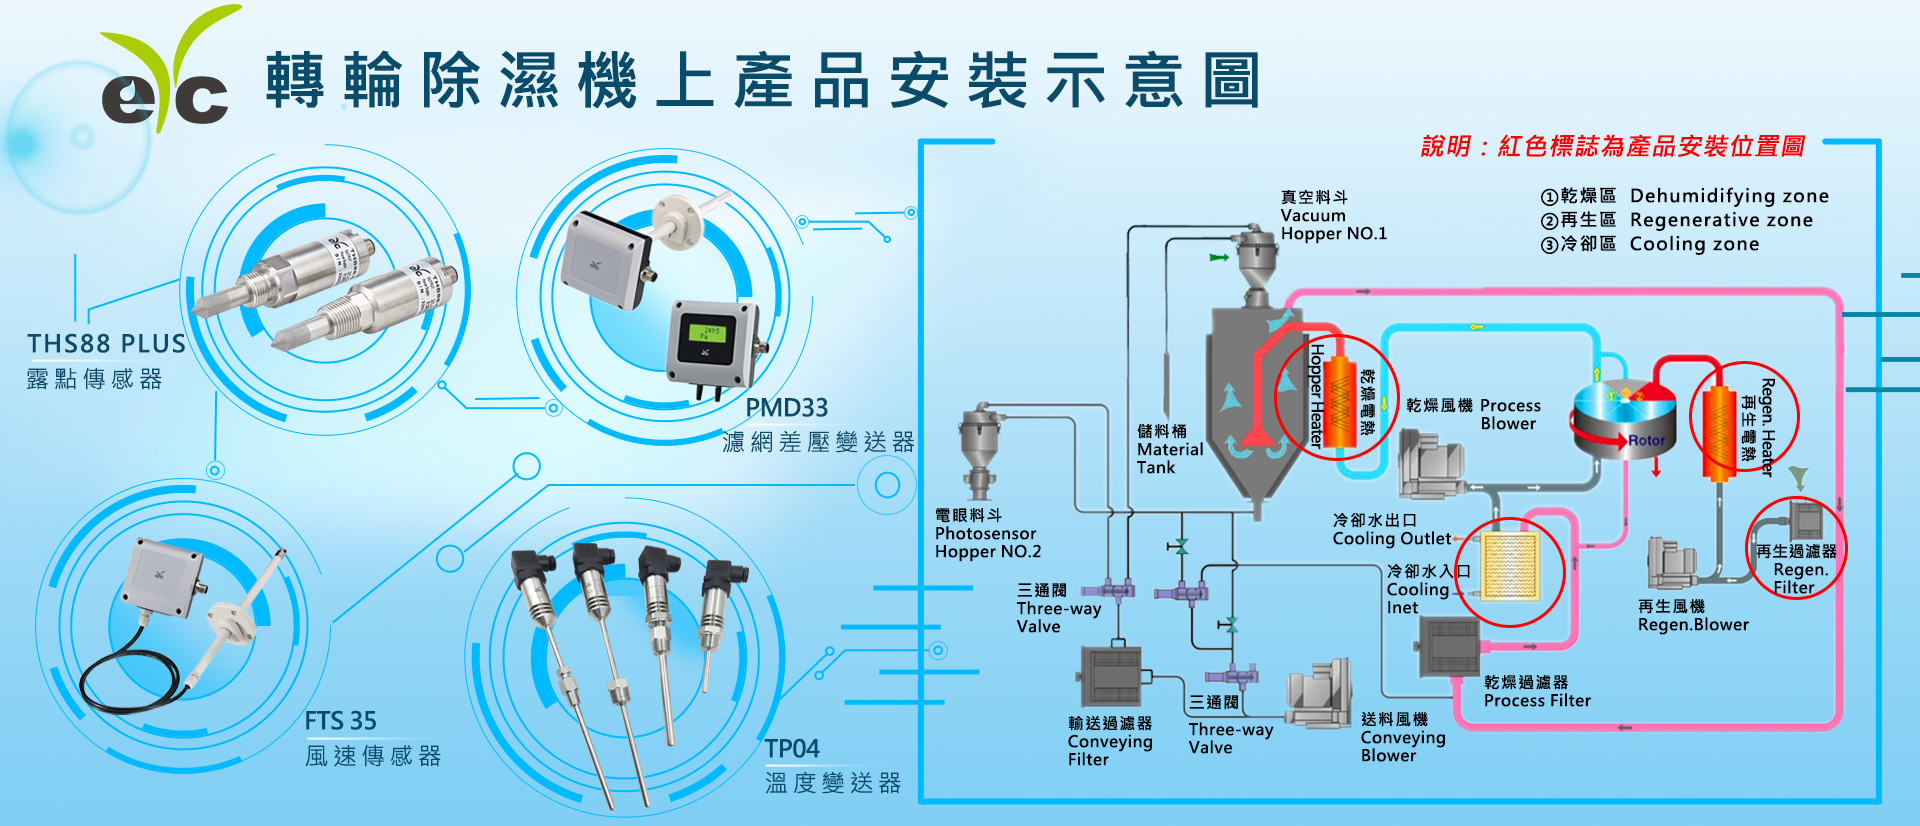 Product-installation-diagram-of-rotary-dehumidifier-tw1.jpg